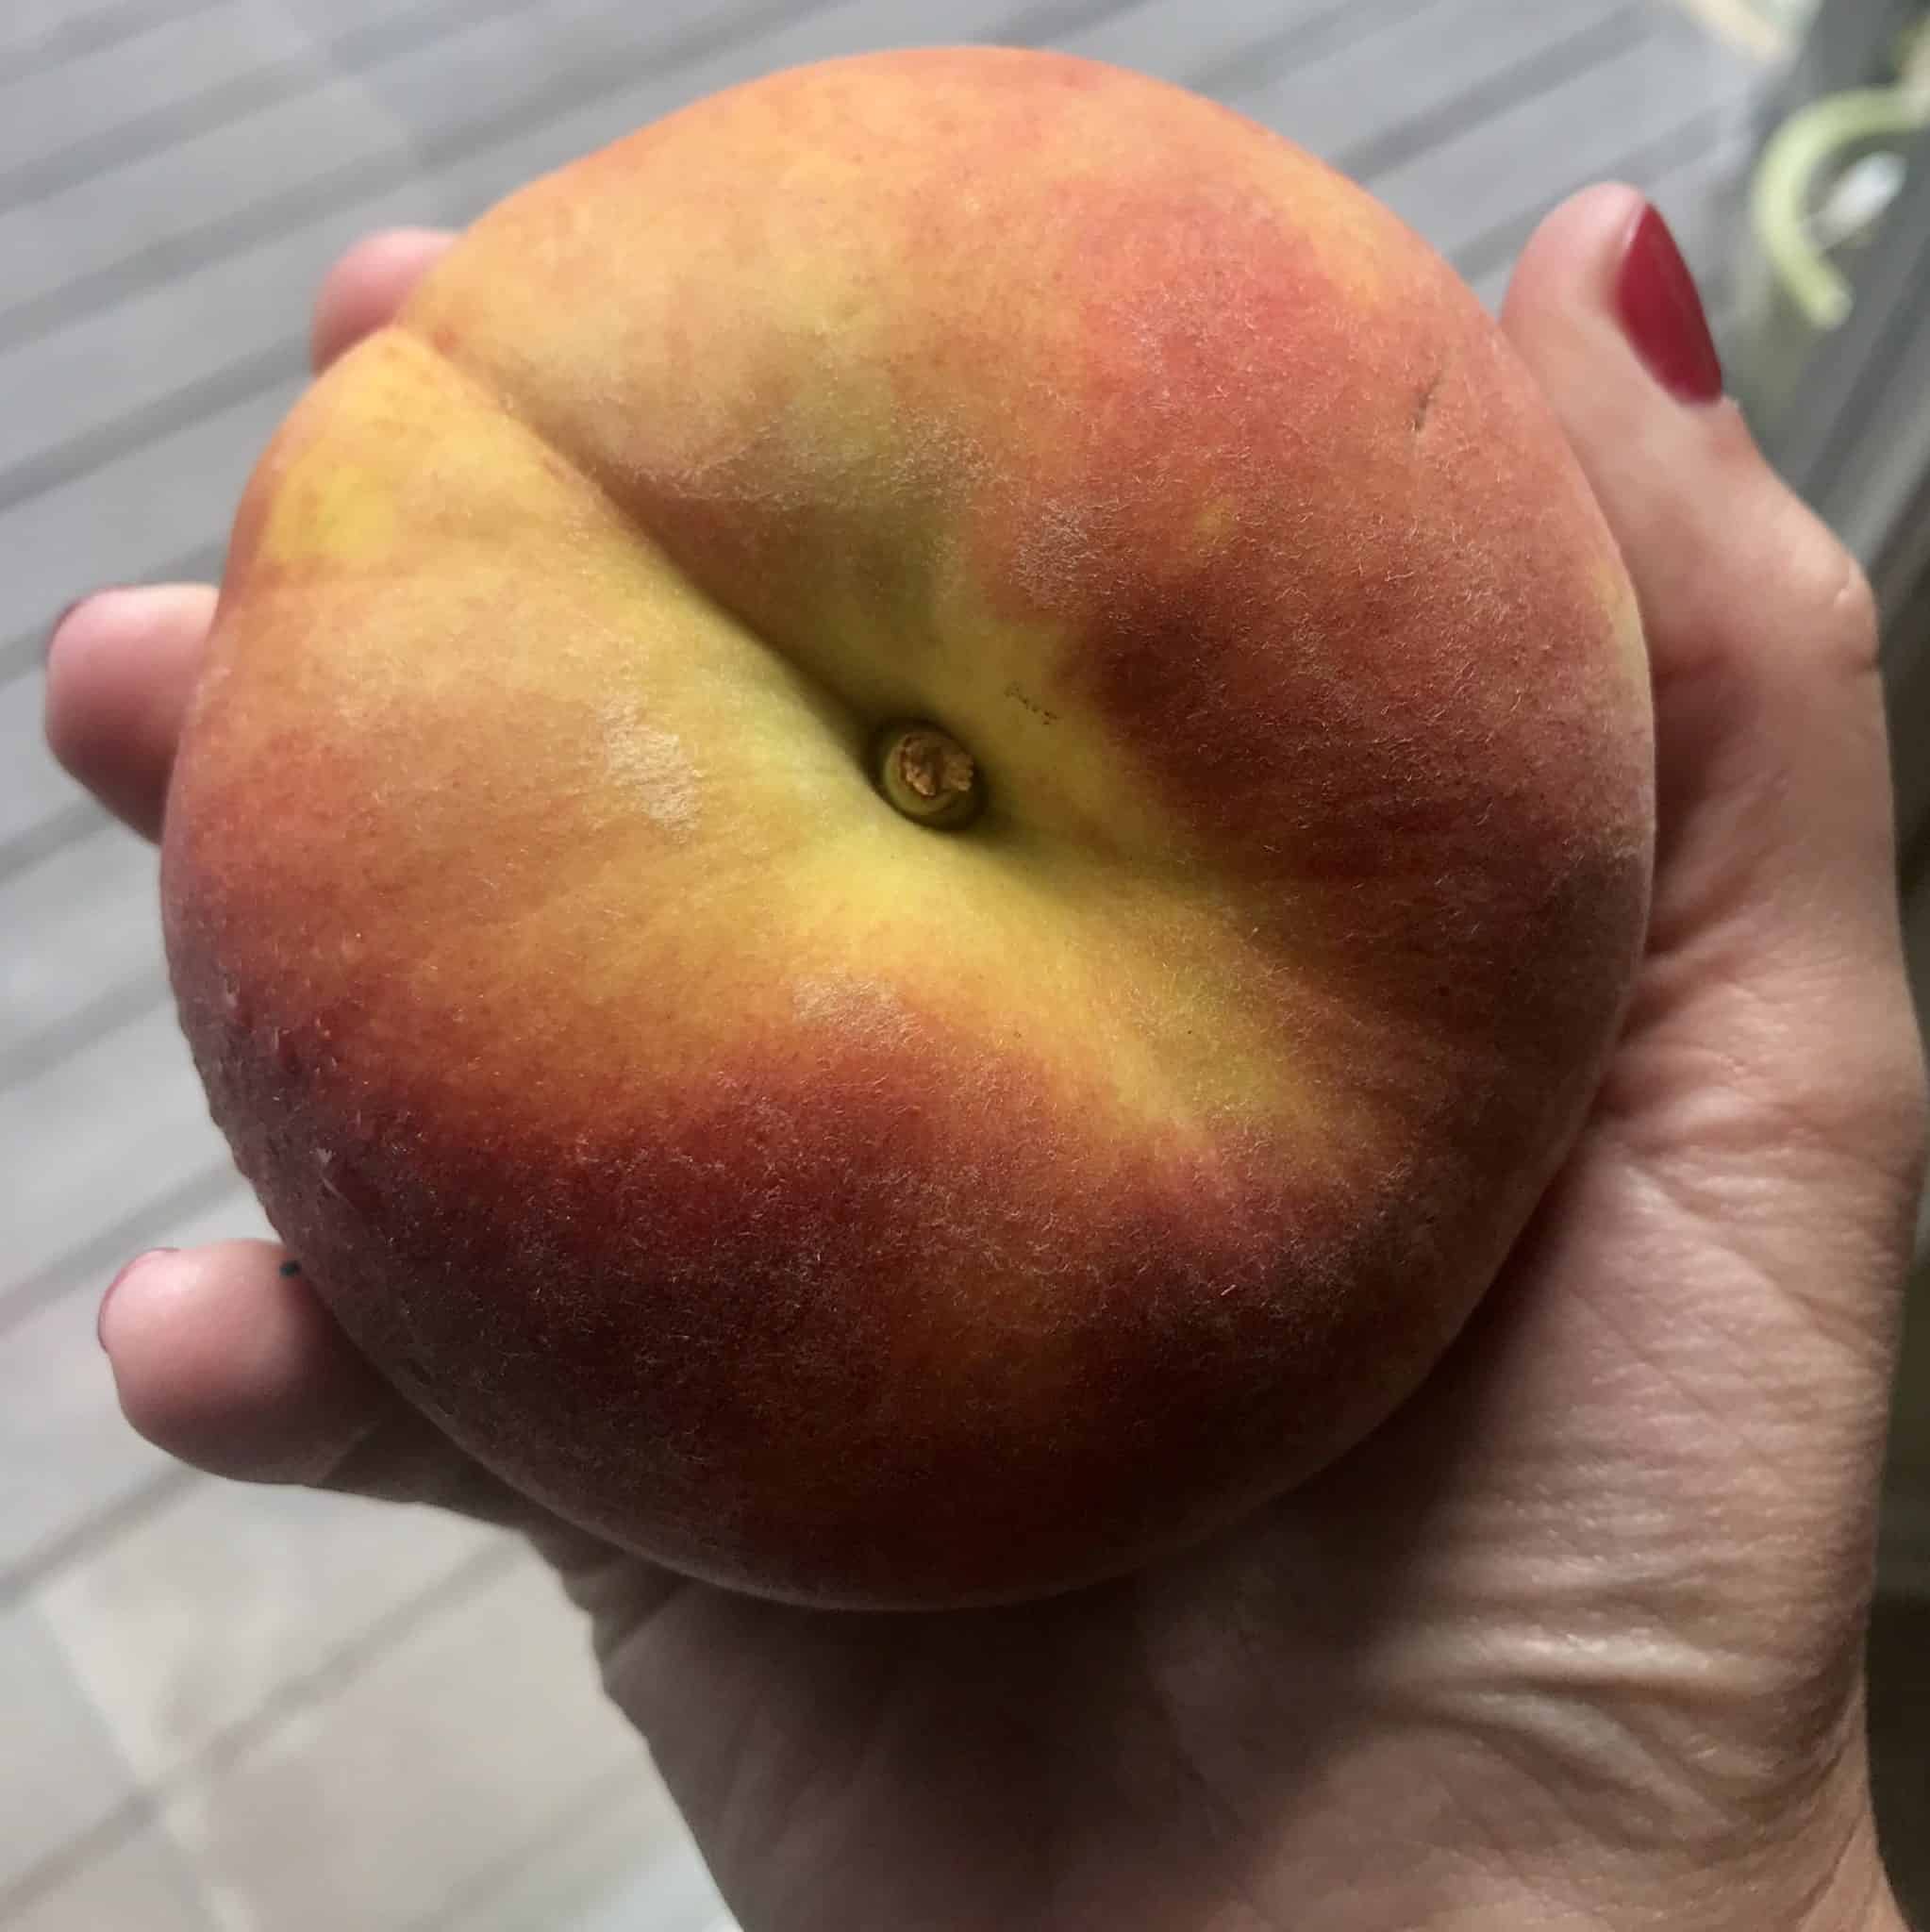 Close up view of huge peach in hand